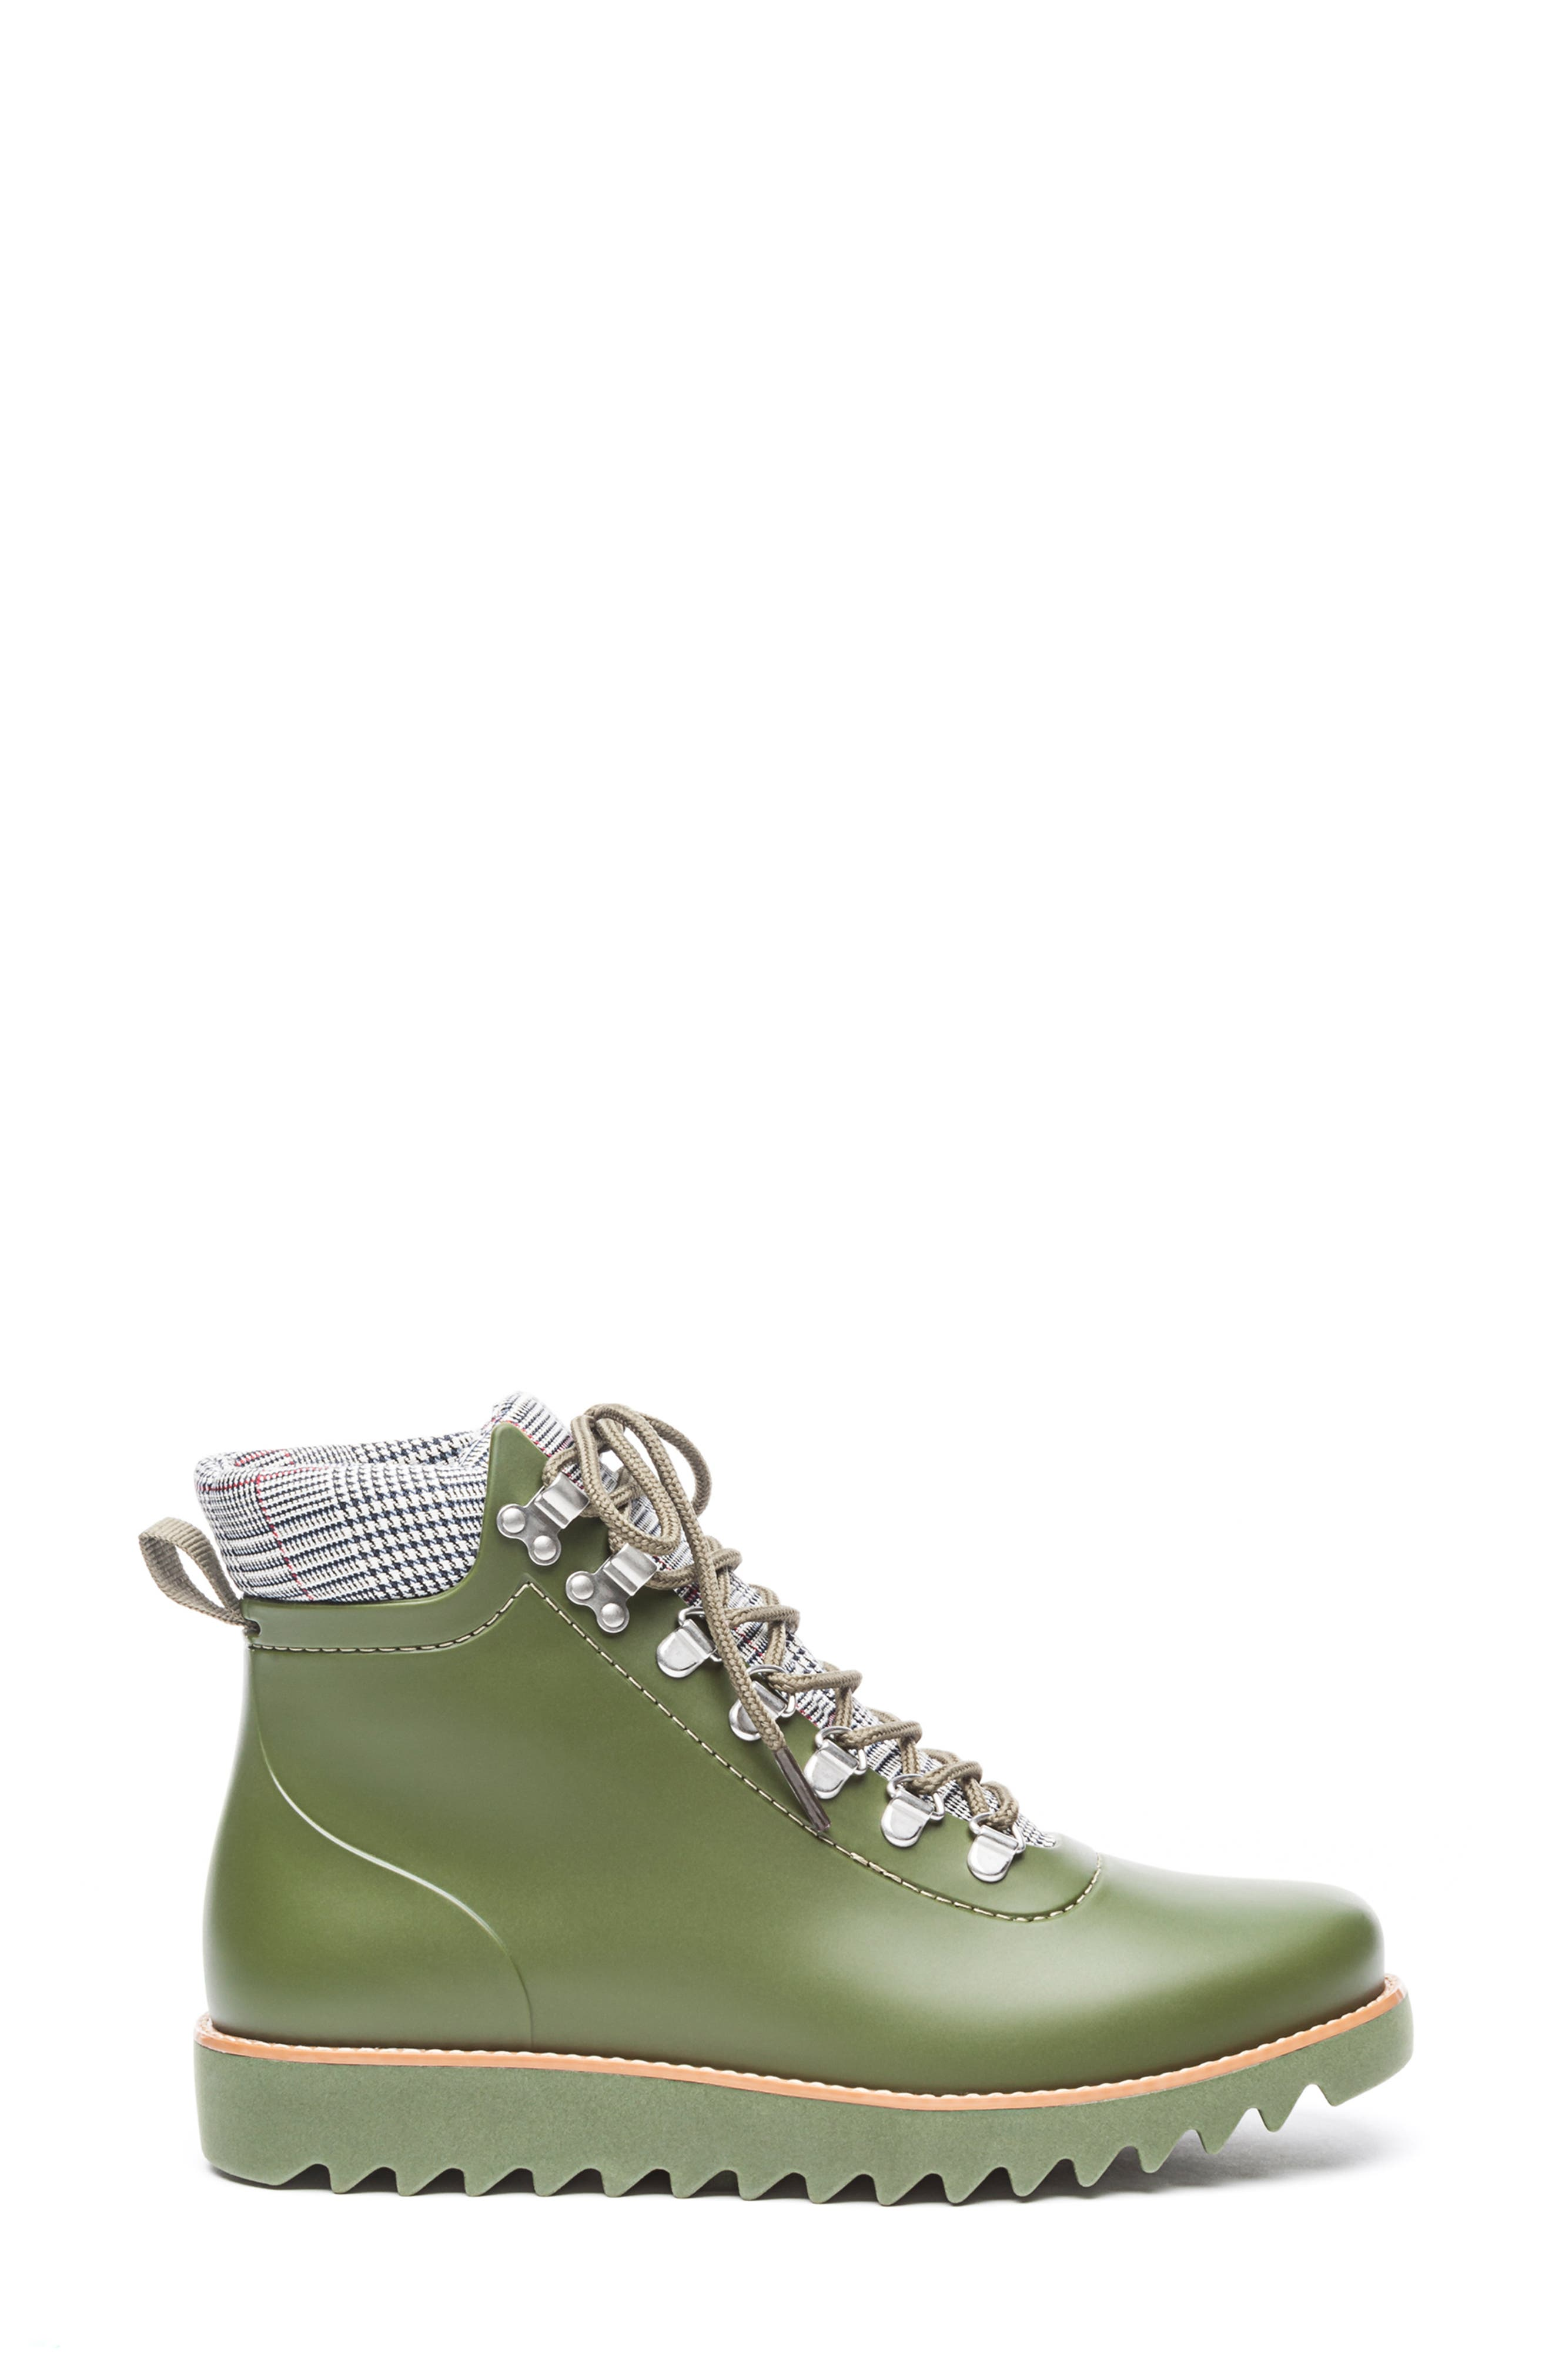 BERNARDO, Winnie Waterproof Rain Bootie, Alternate thumbnail 3, color, MILITARY GREEN